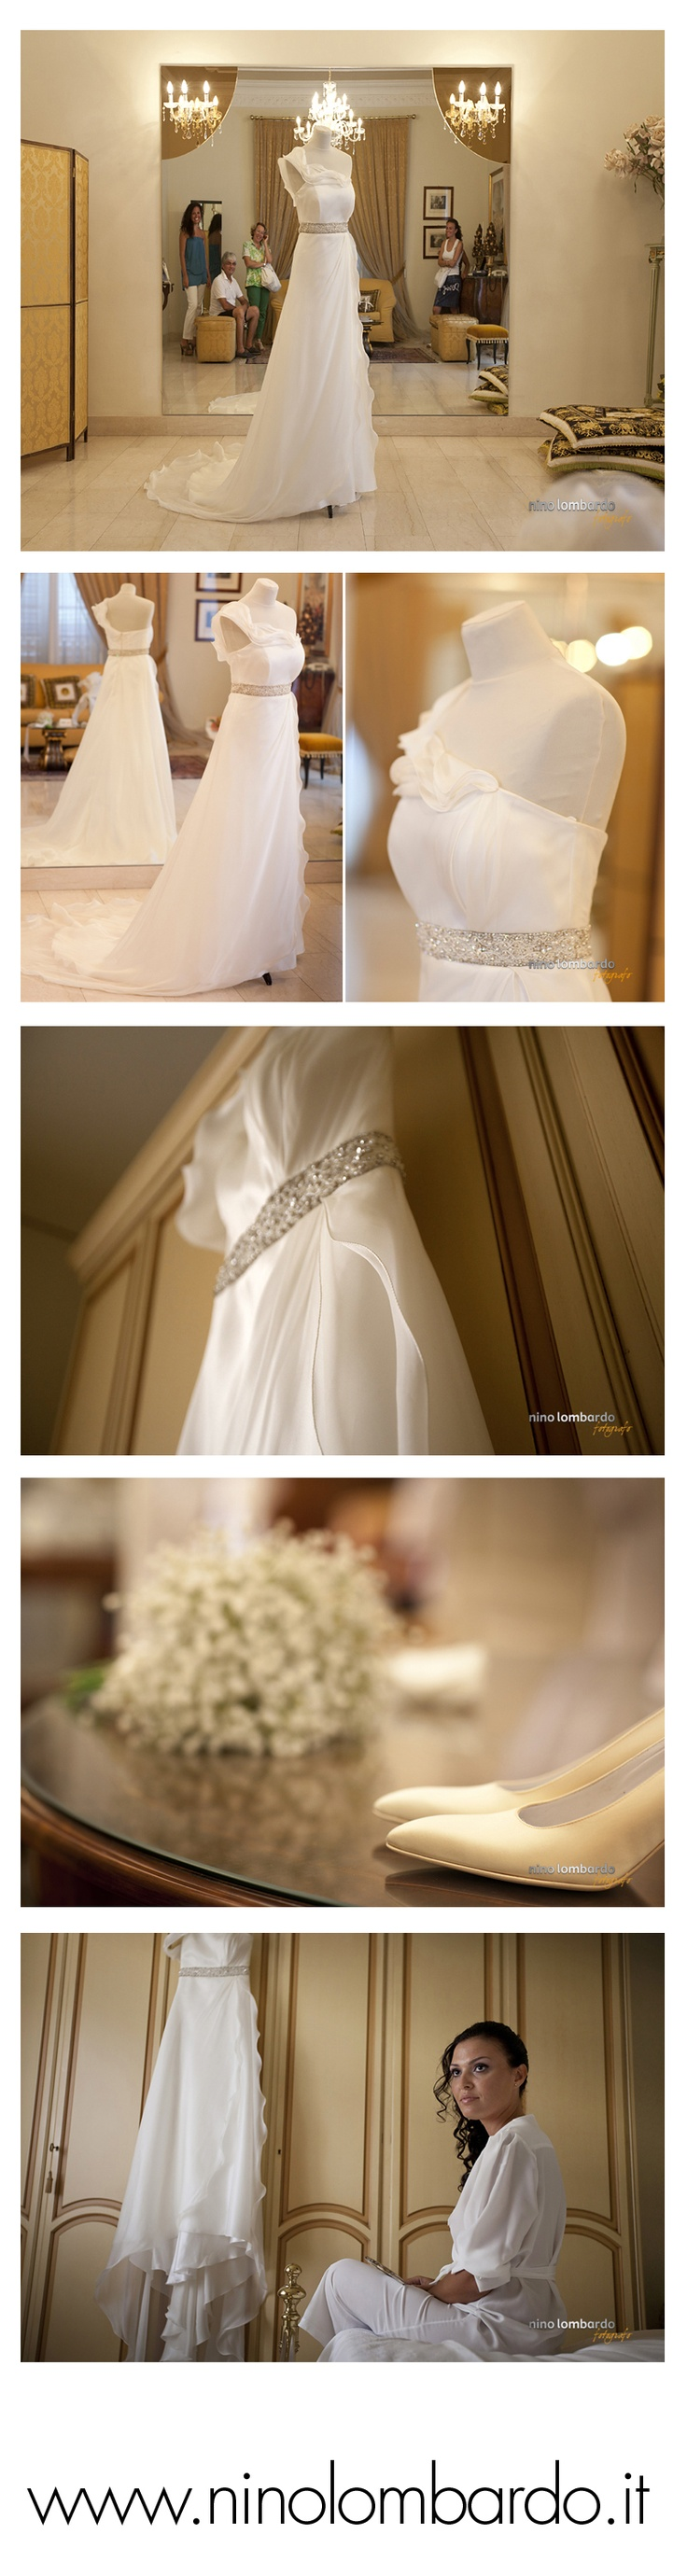 The preparations for the wedding | The wedding dress  © www.ninolombardo.it